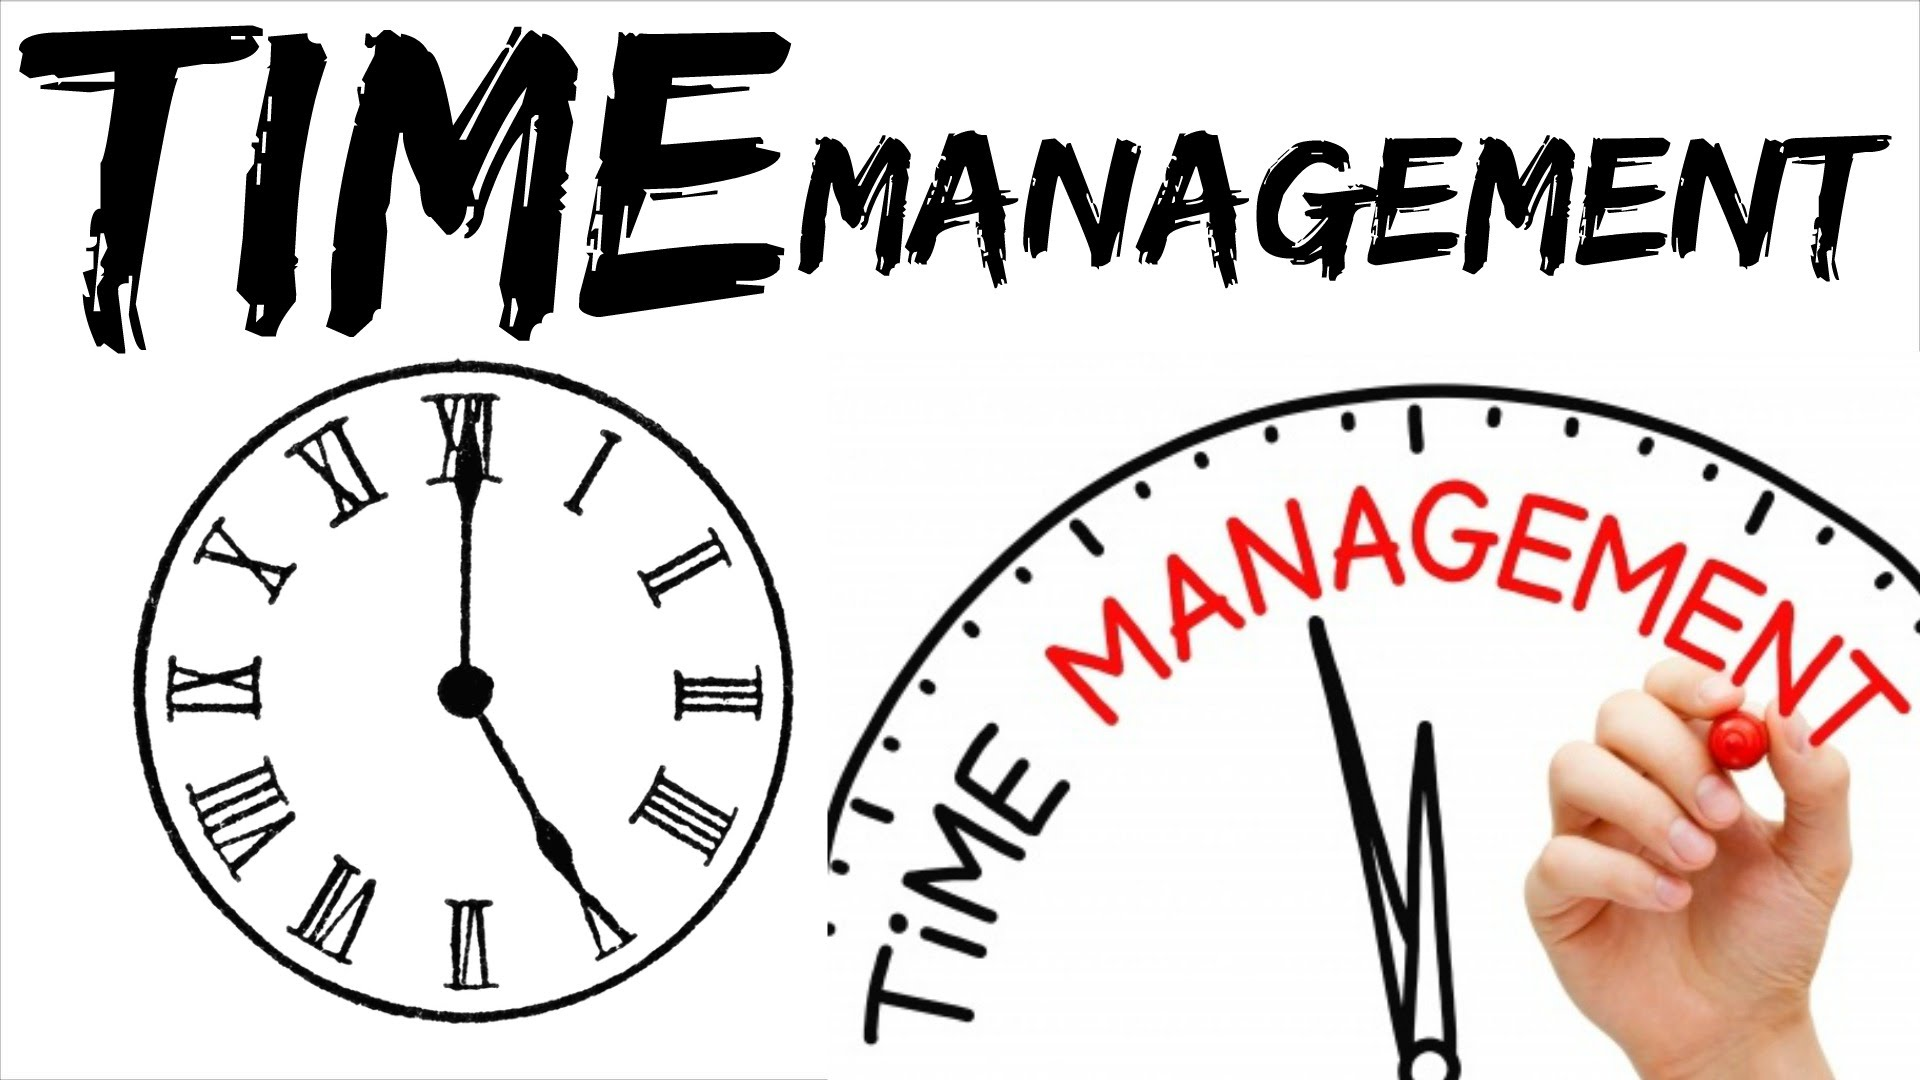 Ten Time Management Myths: Part 1.